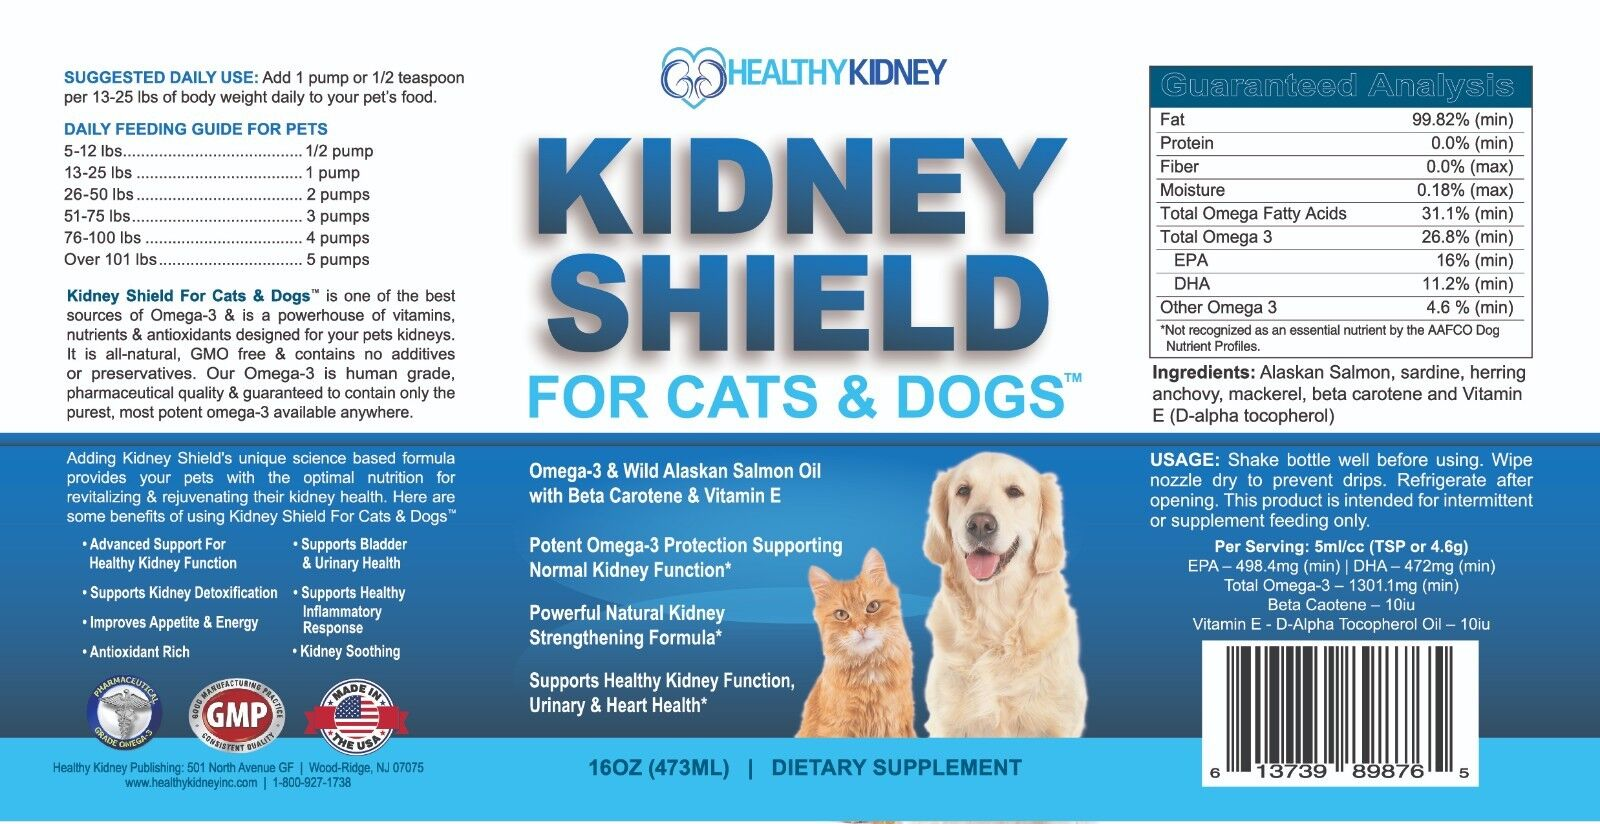 Kidney Shield Supplement For Cats Dogs Fish Oil Pets Fatty Acids